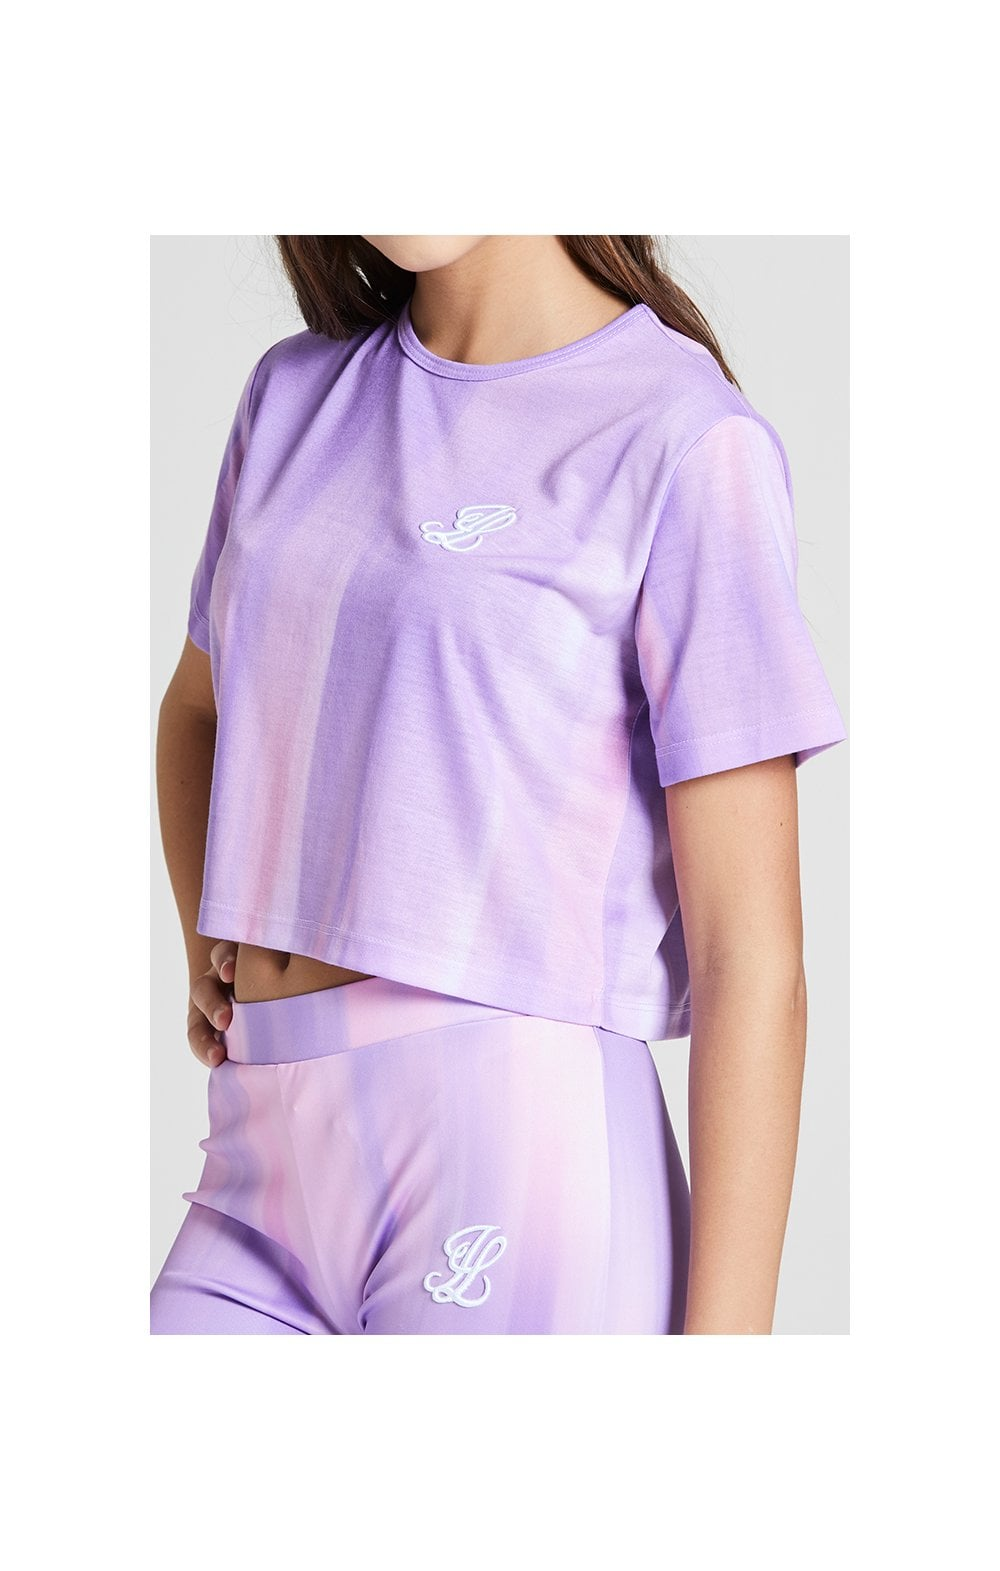 Illusive London Cropped Marble Tee - Lilac & Marble